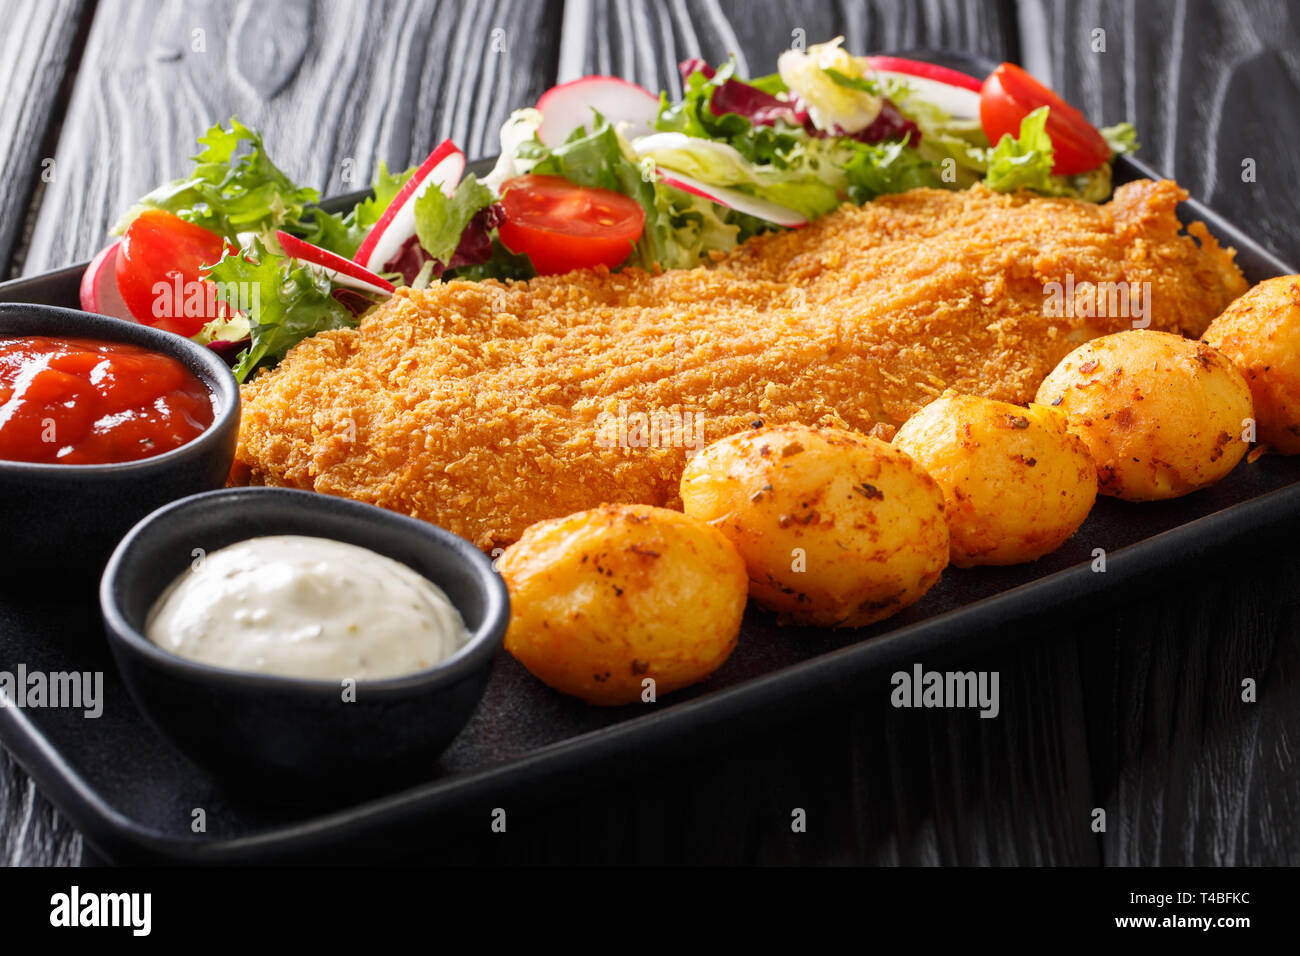 Served cod fillet in breading with new potatoes and fresh vegetable salad close-up on a plate on the table. horizontal - Stock Image